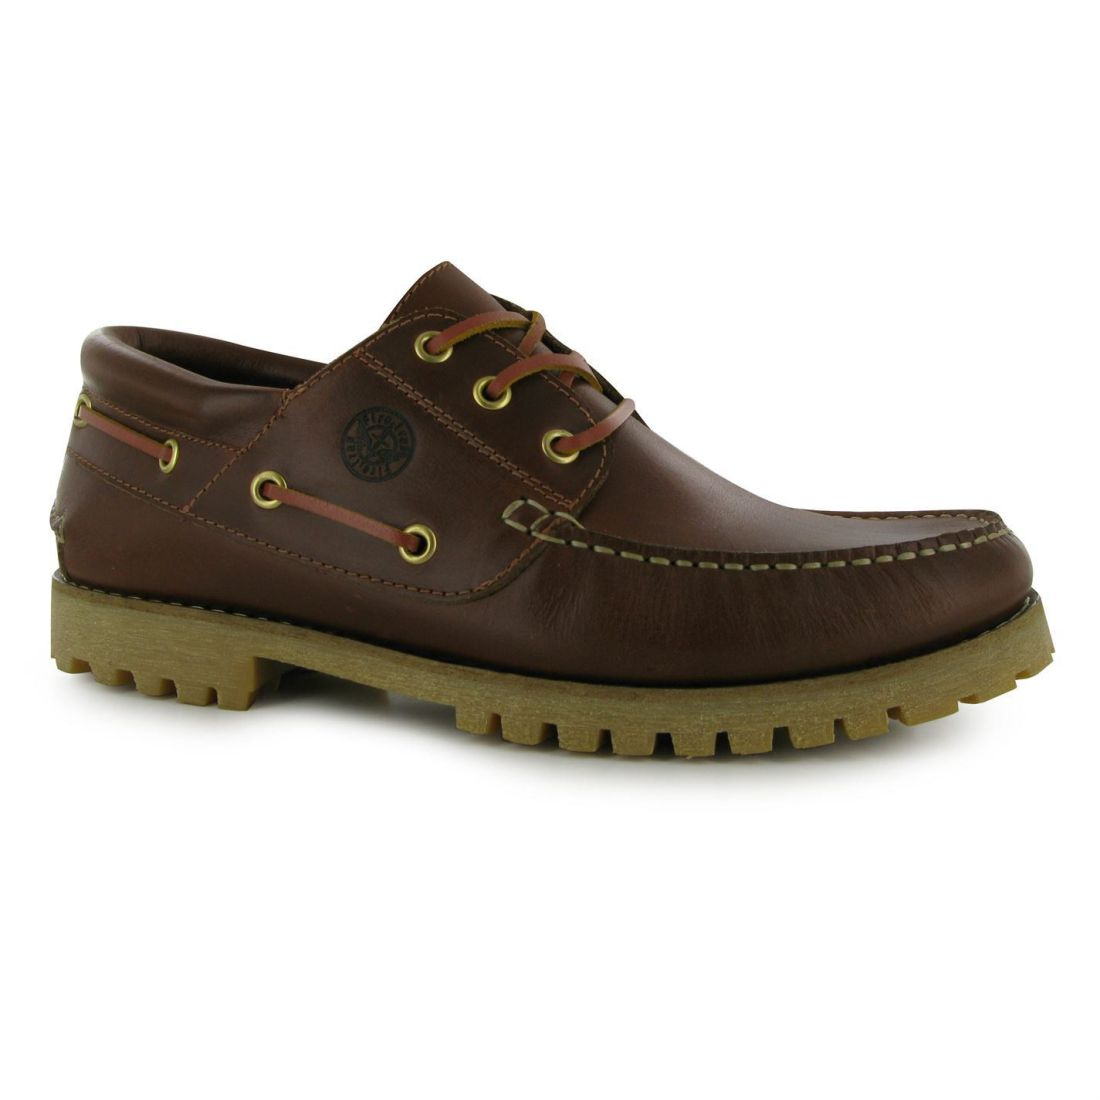 Firetrap Mens Gents Jose Boat shoes Laces Fastened Footwear